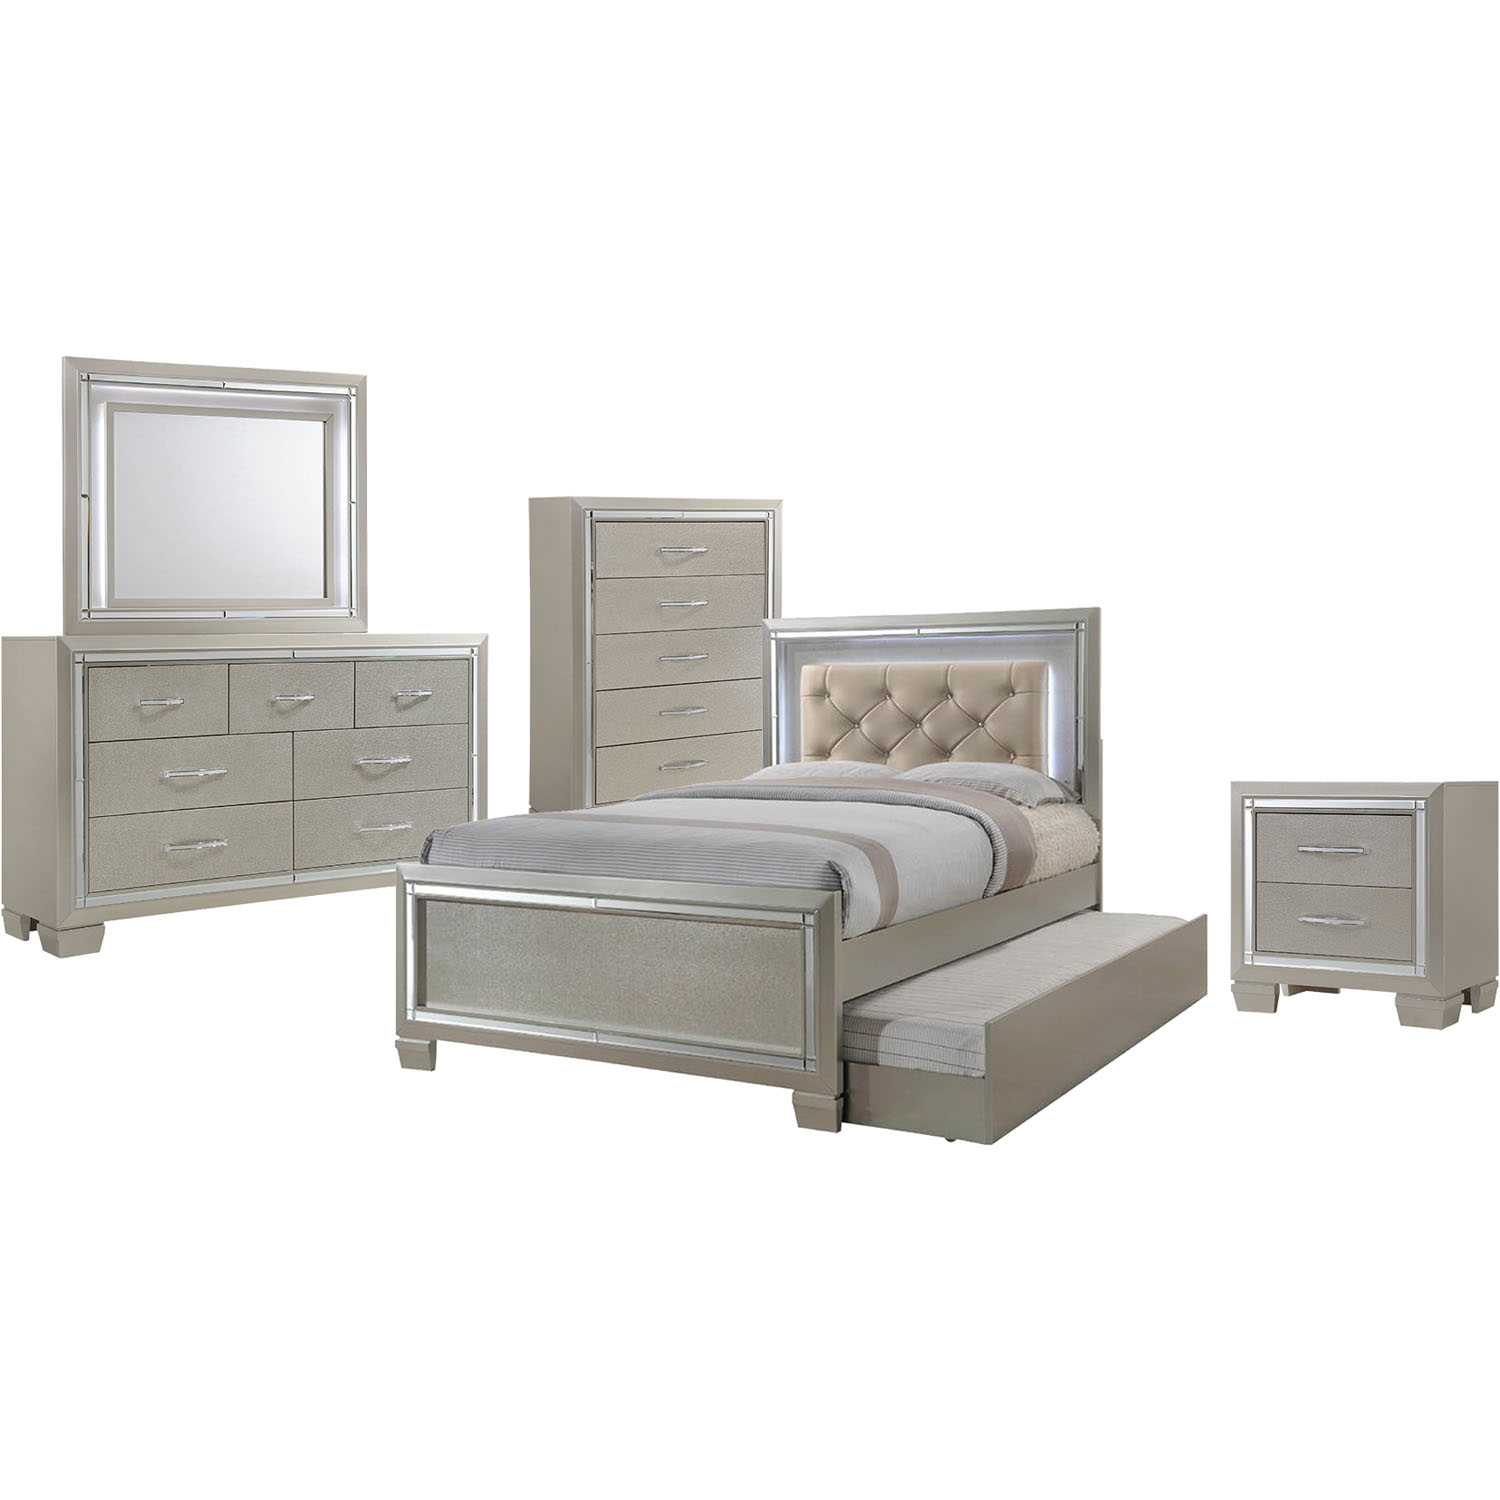 Elegance 5pc full size bedroom suite 98117a5ft1 cm - Suite cm ...